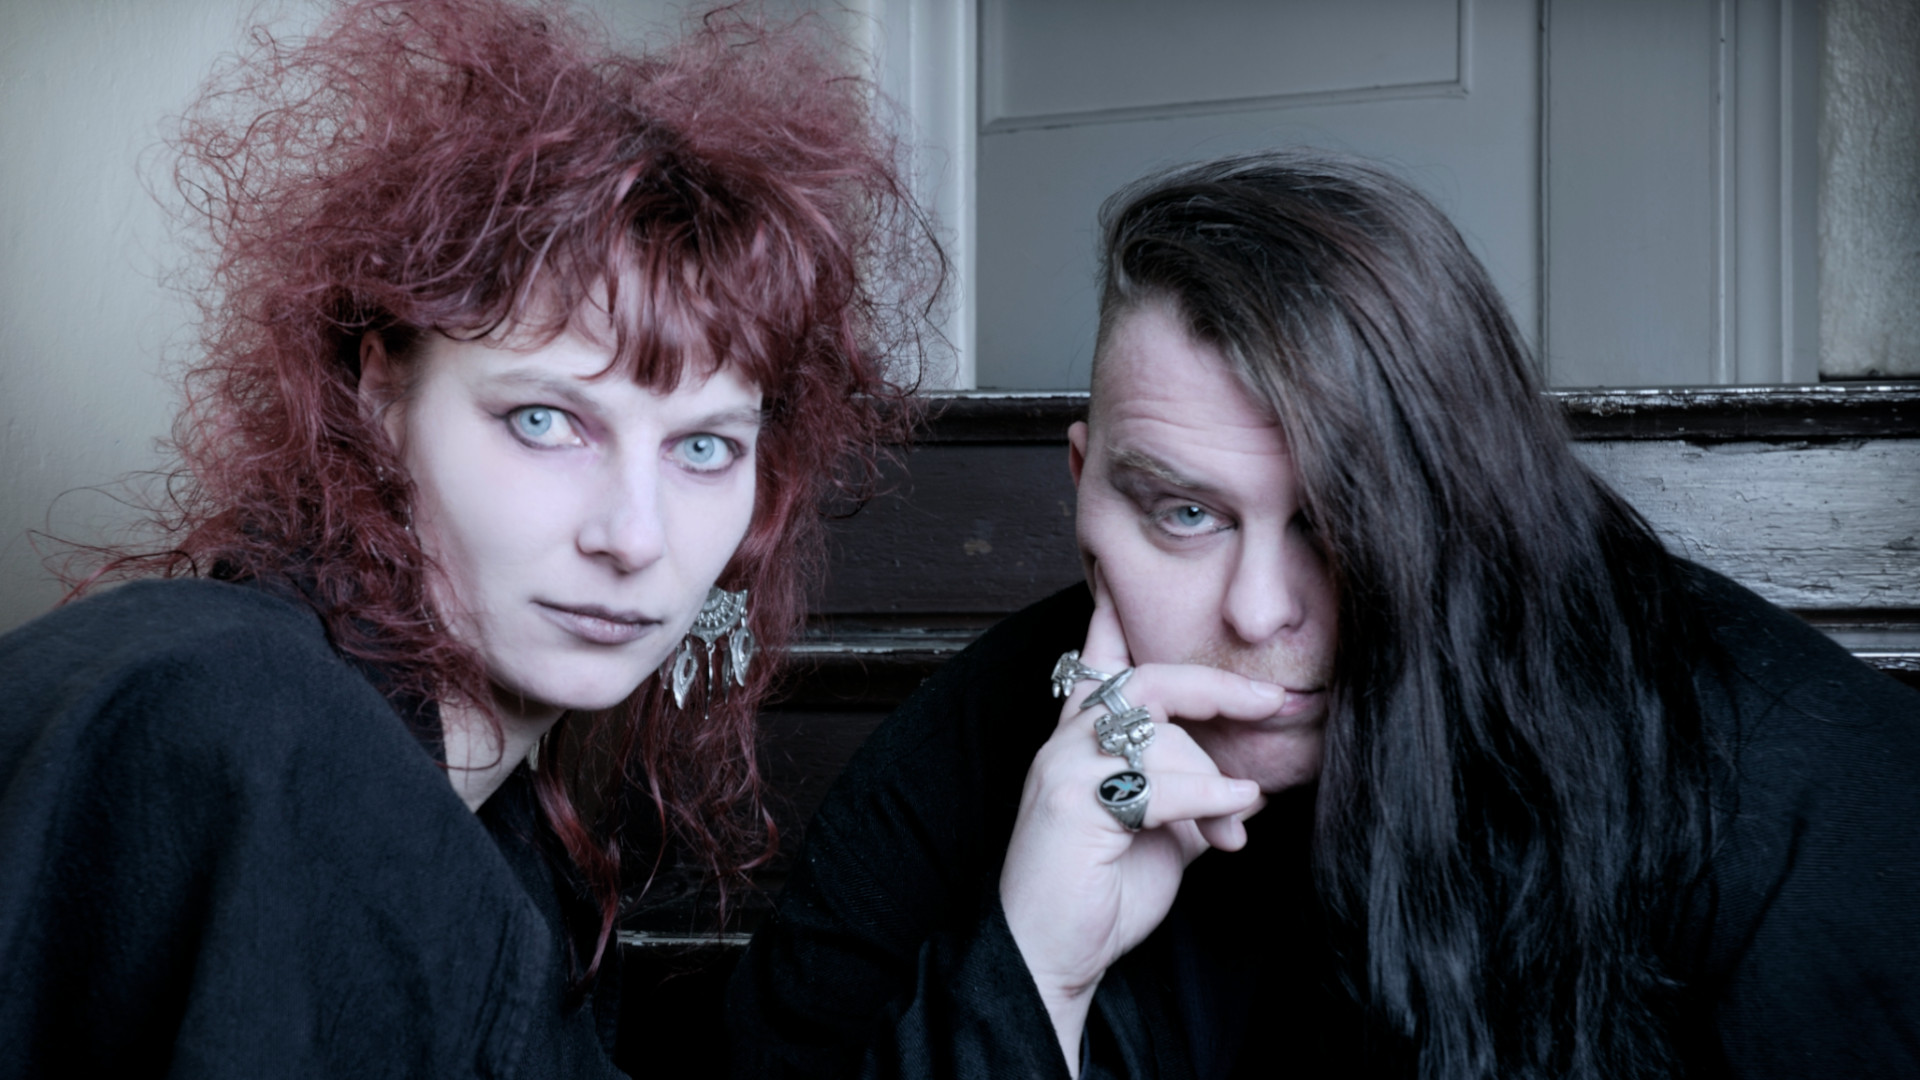 Luxembourg goths